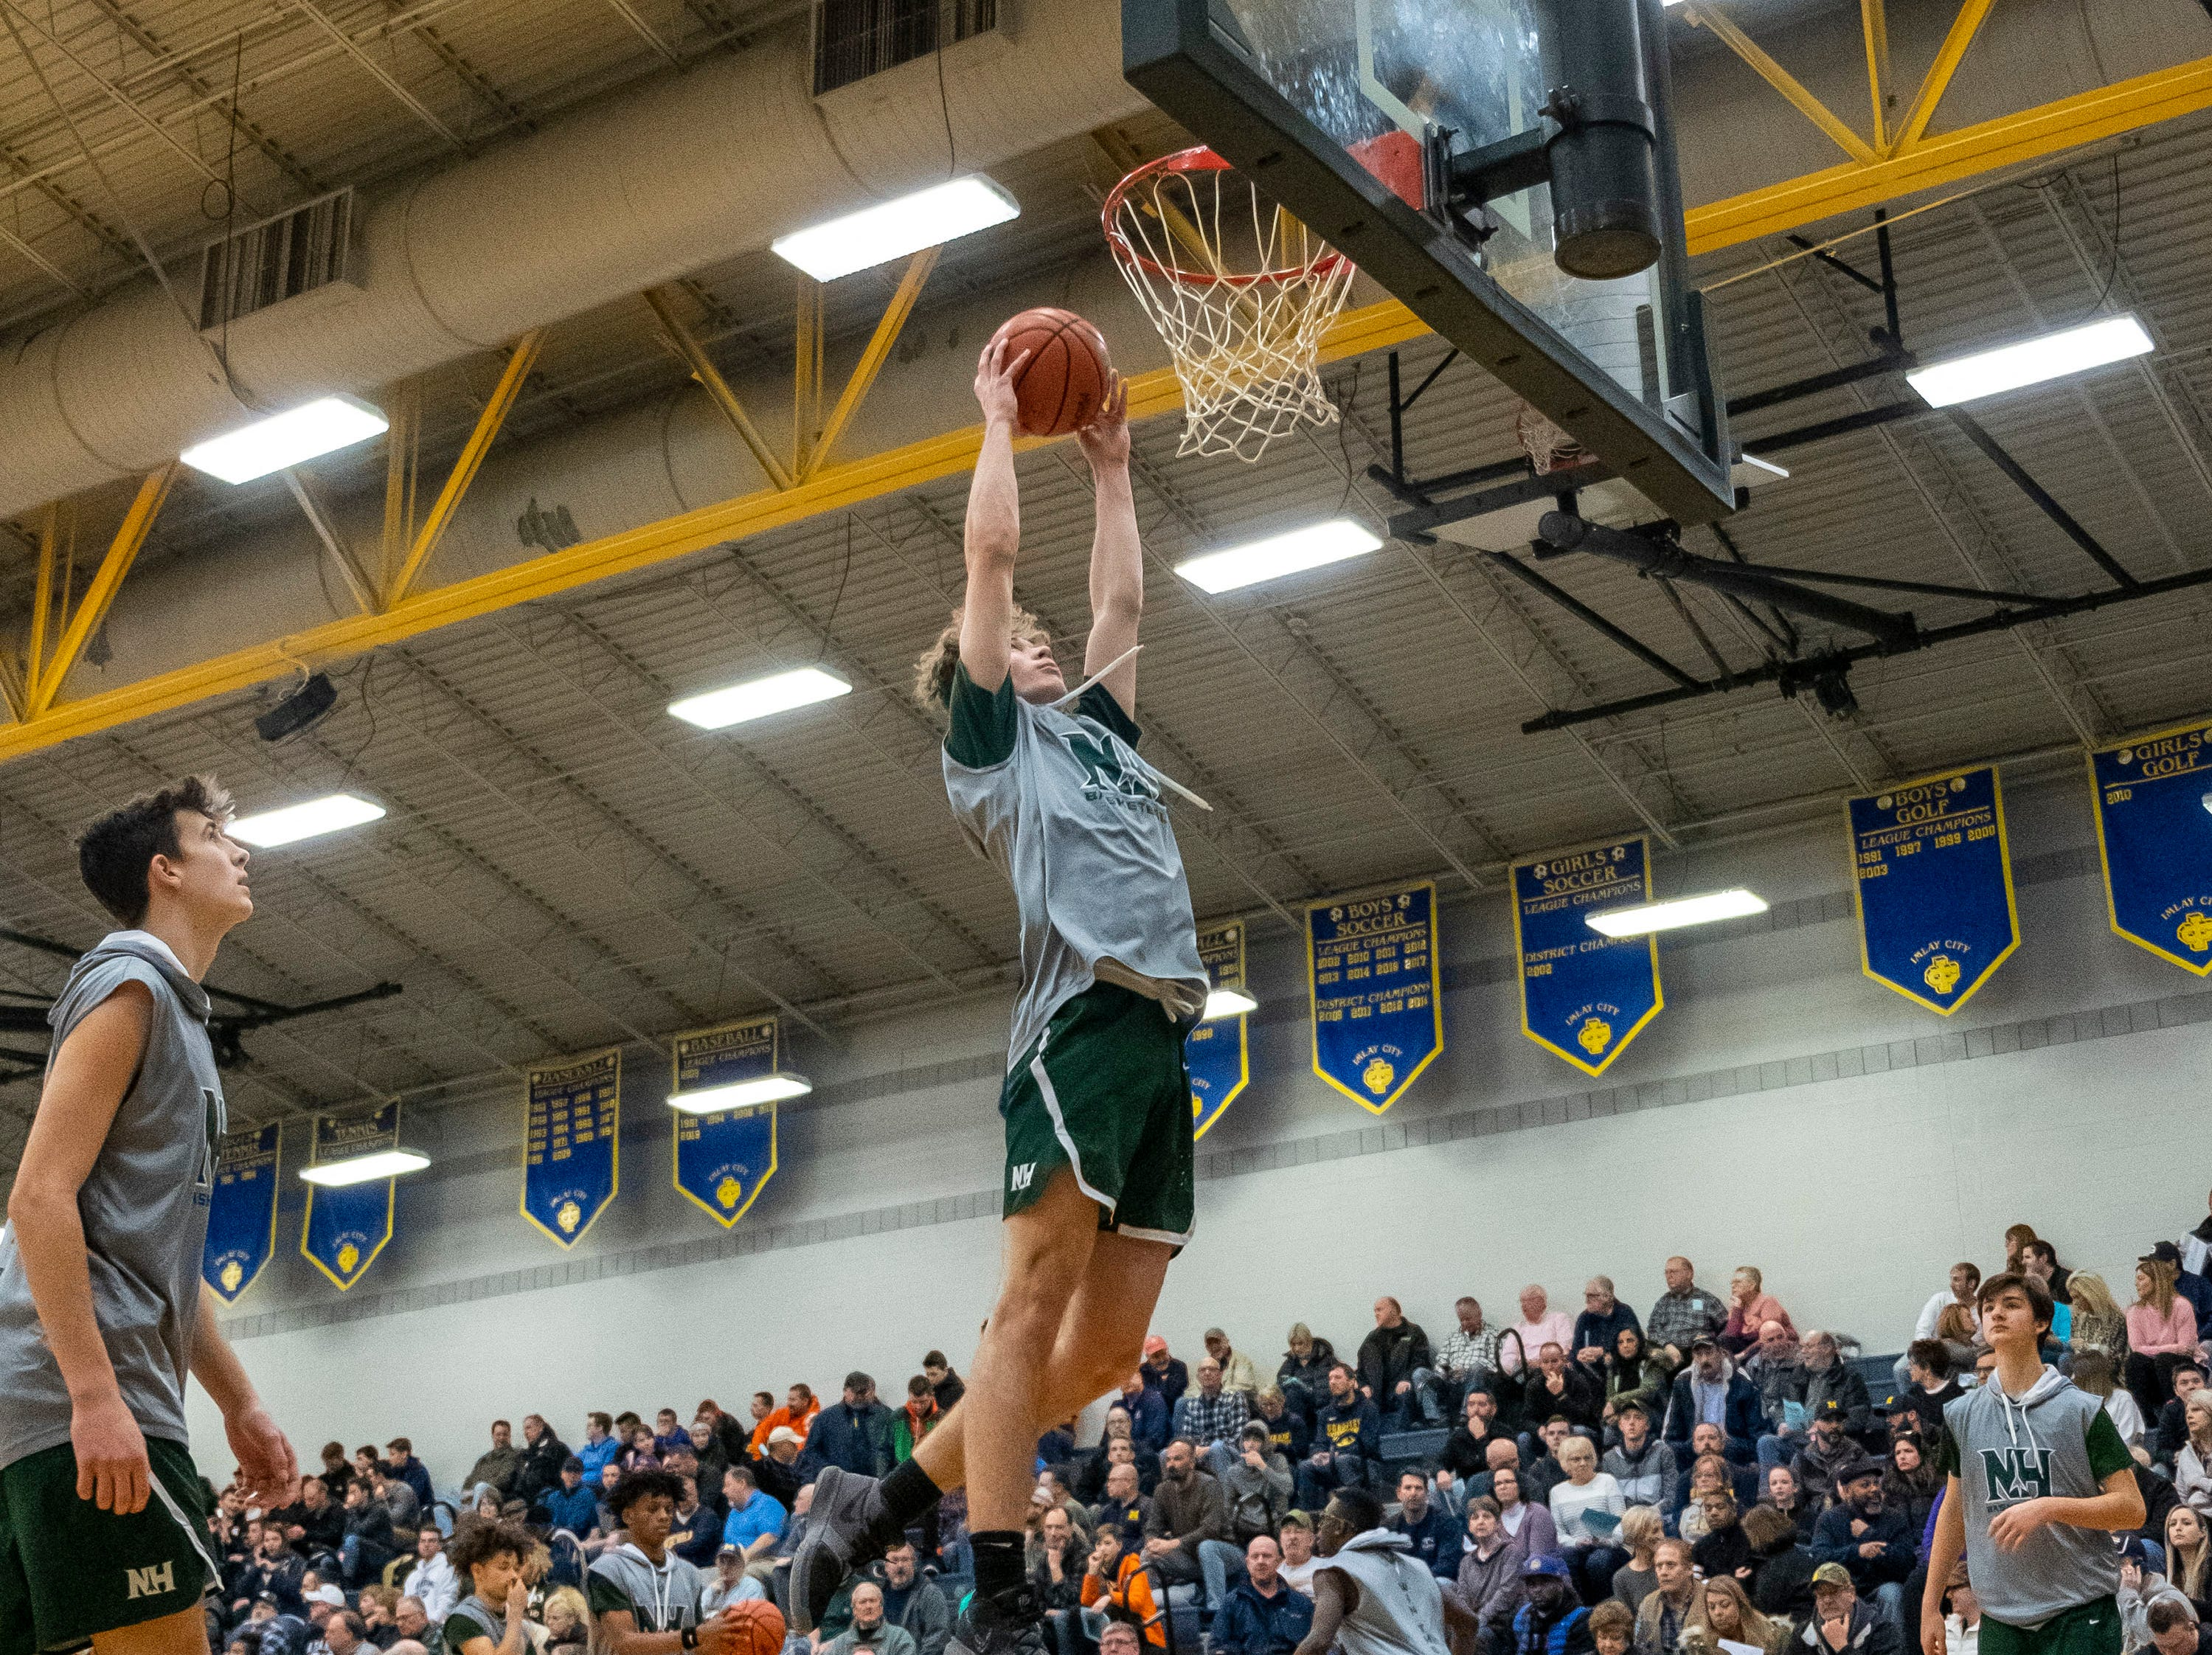 New Haven's Brent Wiles jumps to dunk the ball before taking on Goodrich High School in the MHSAA District 2 basketball regionals Tuesday, March 5, 2019 at Imlay City High School.